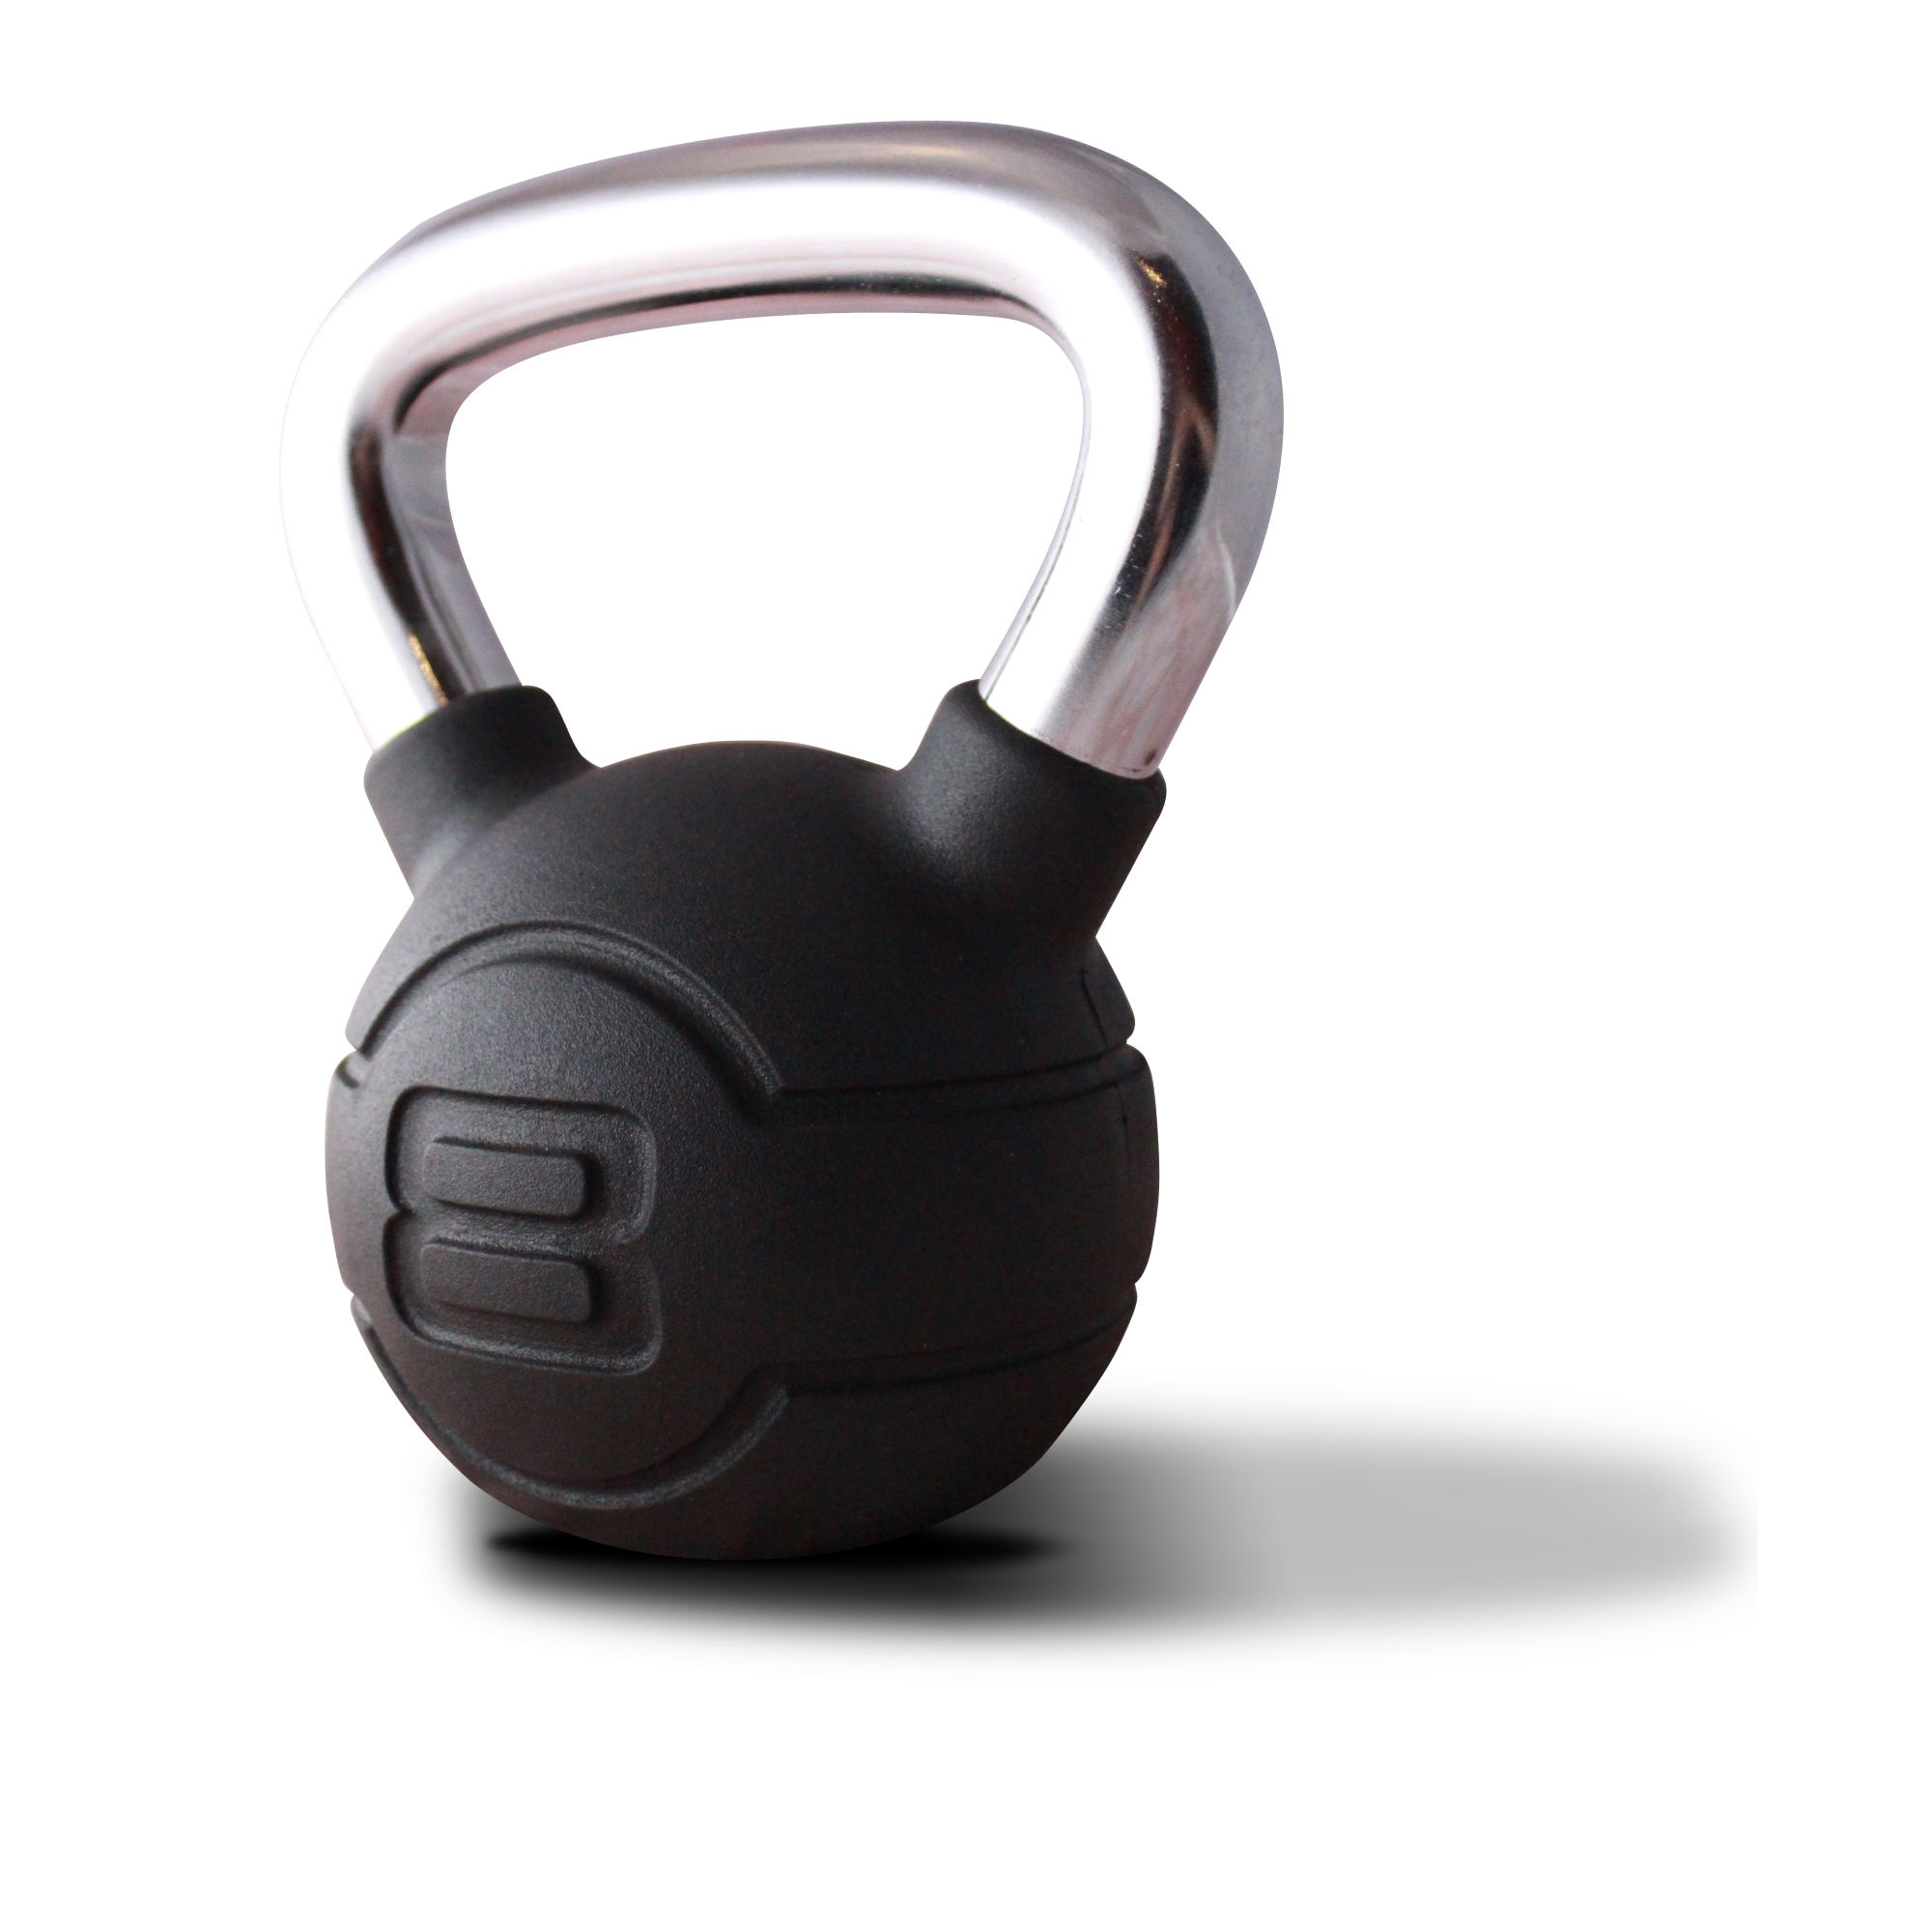 Jordan Black Rubber & Chrome Kettlebell 14kg